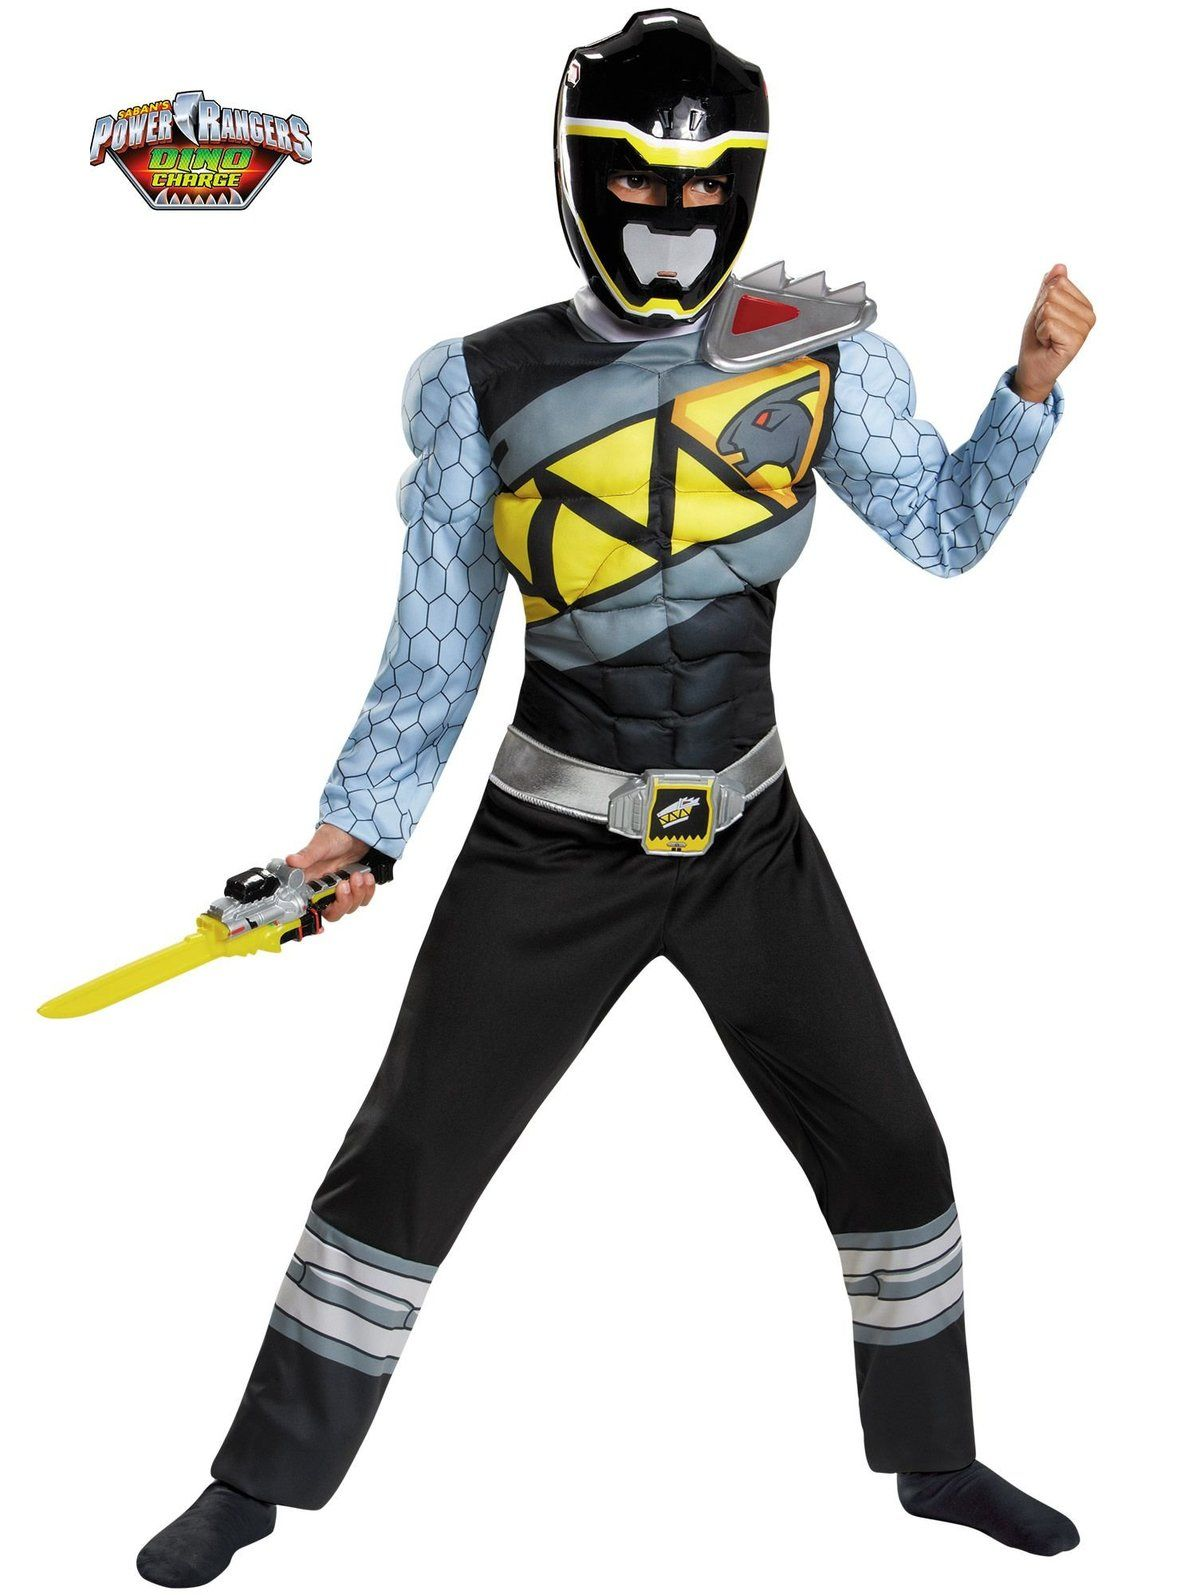 view larger image festa power ranger pinterest power rangers